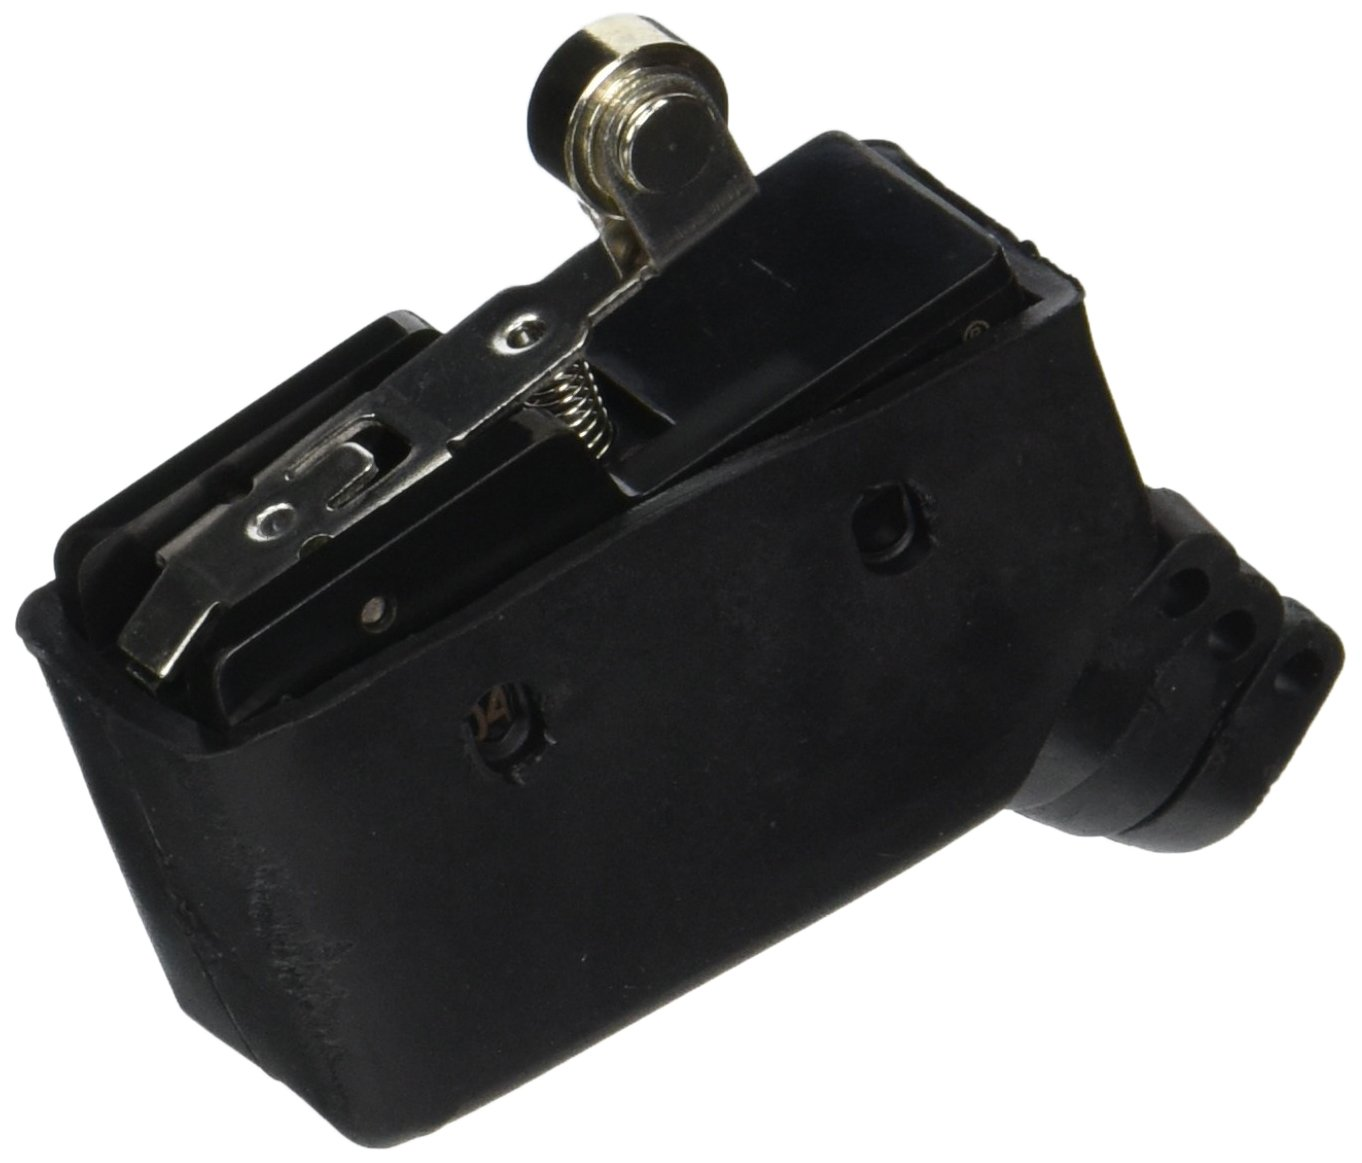 TM-1704 Short Hinge Roller Lever Micro Limit Switch 250V 15A w Cover Sourcingmap a13061400ux0015